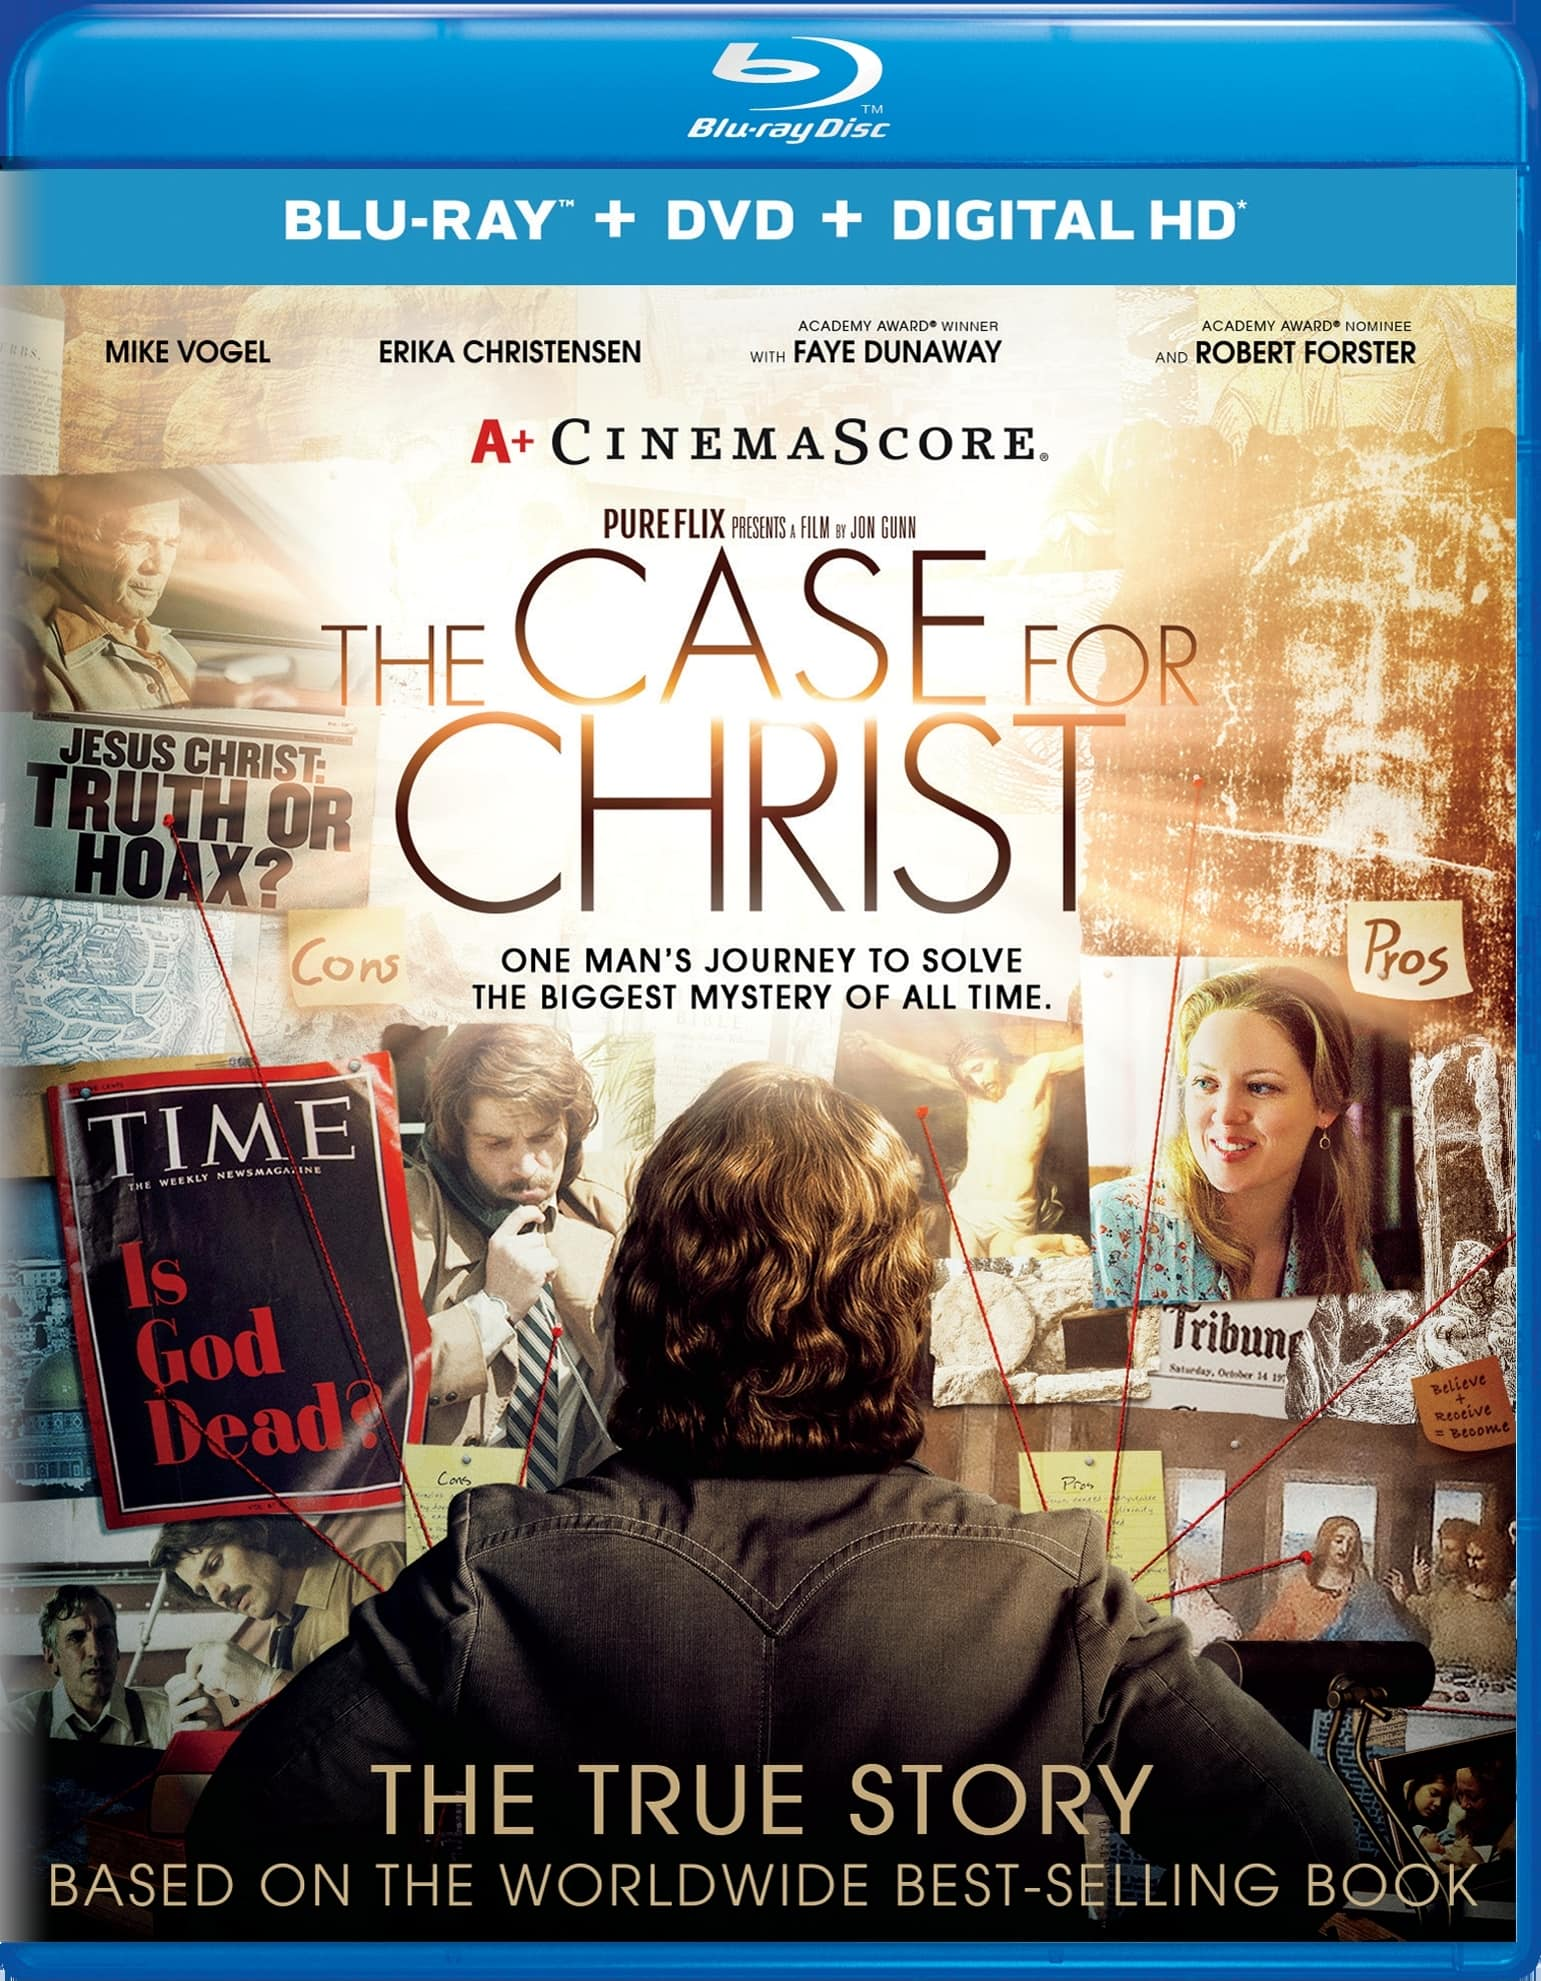 The Case for Christ (Blu-ray + DVD + Digital HD) $5 @ Amazon or Walmart with VUDU instawatch + pickup